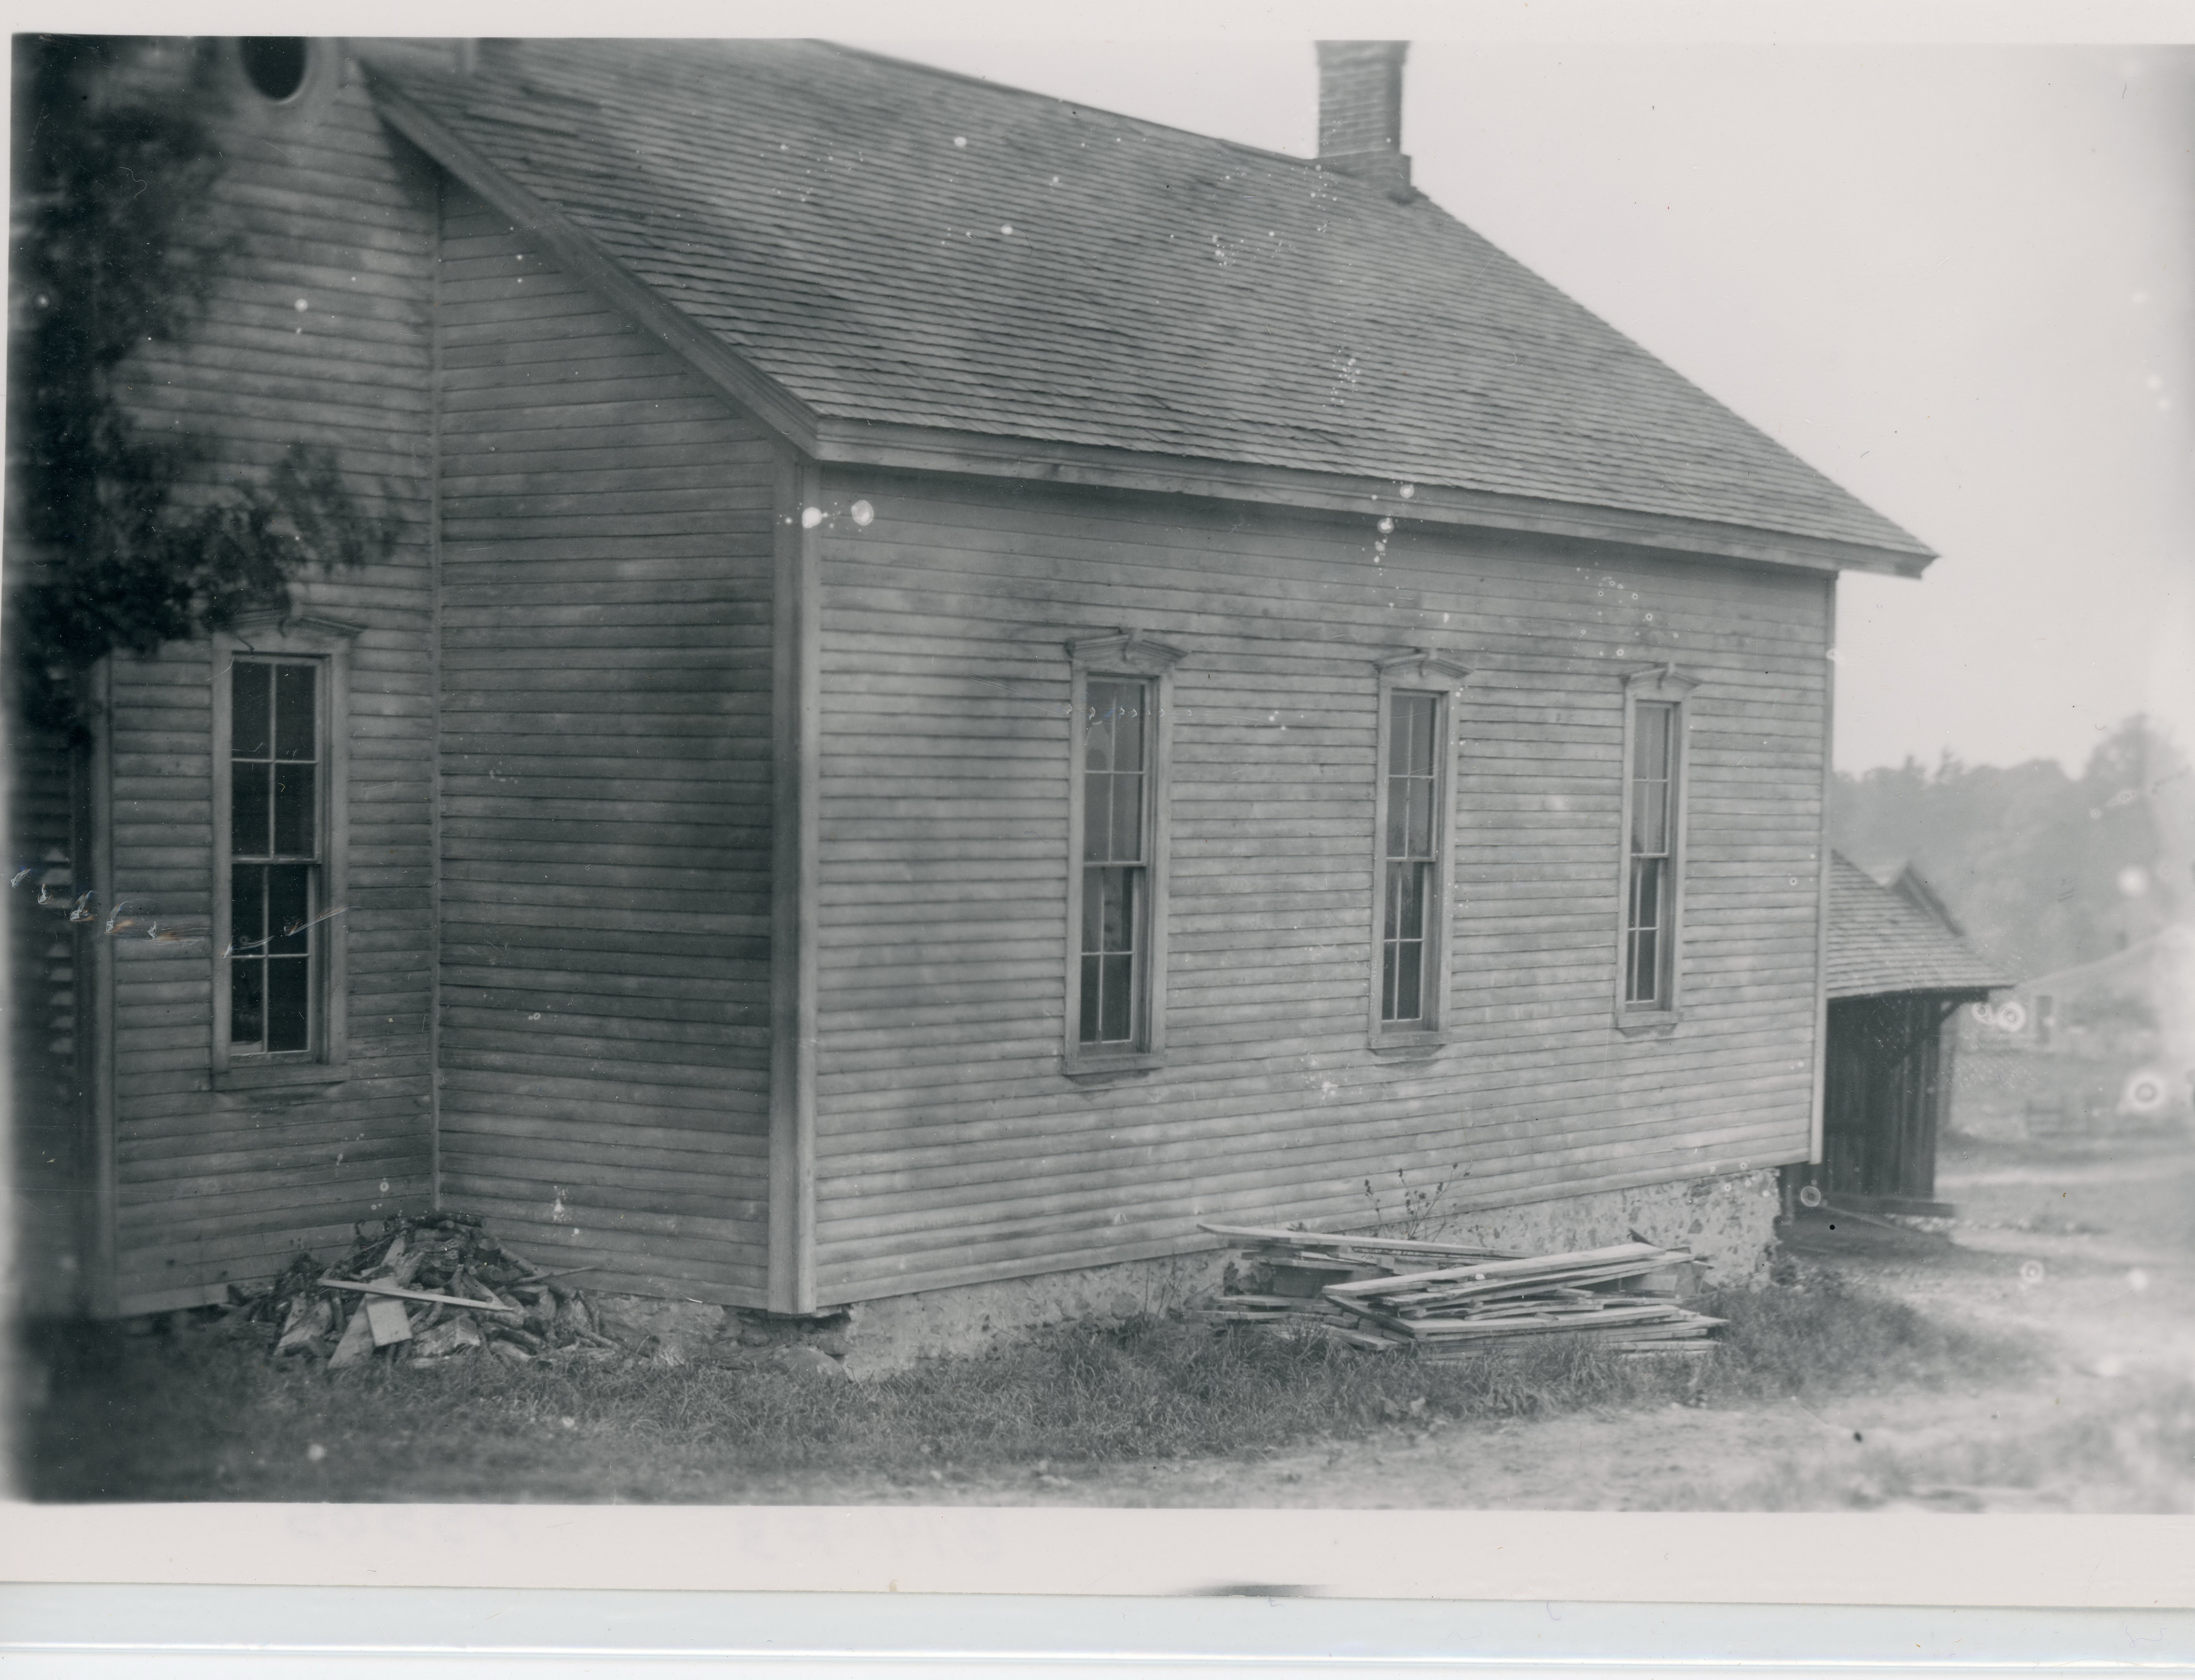 A close-up image of the wooden Free Methodist Church in Byersville, West Sparta